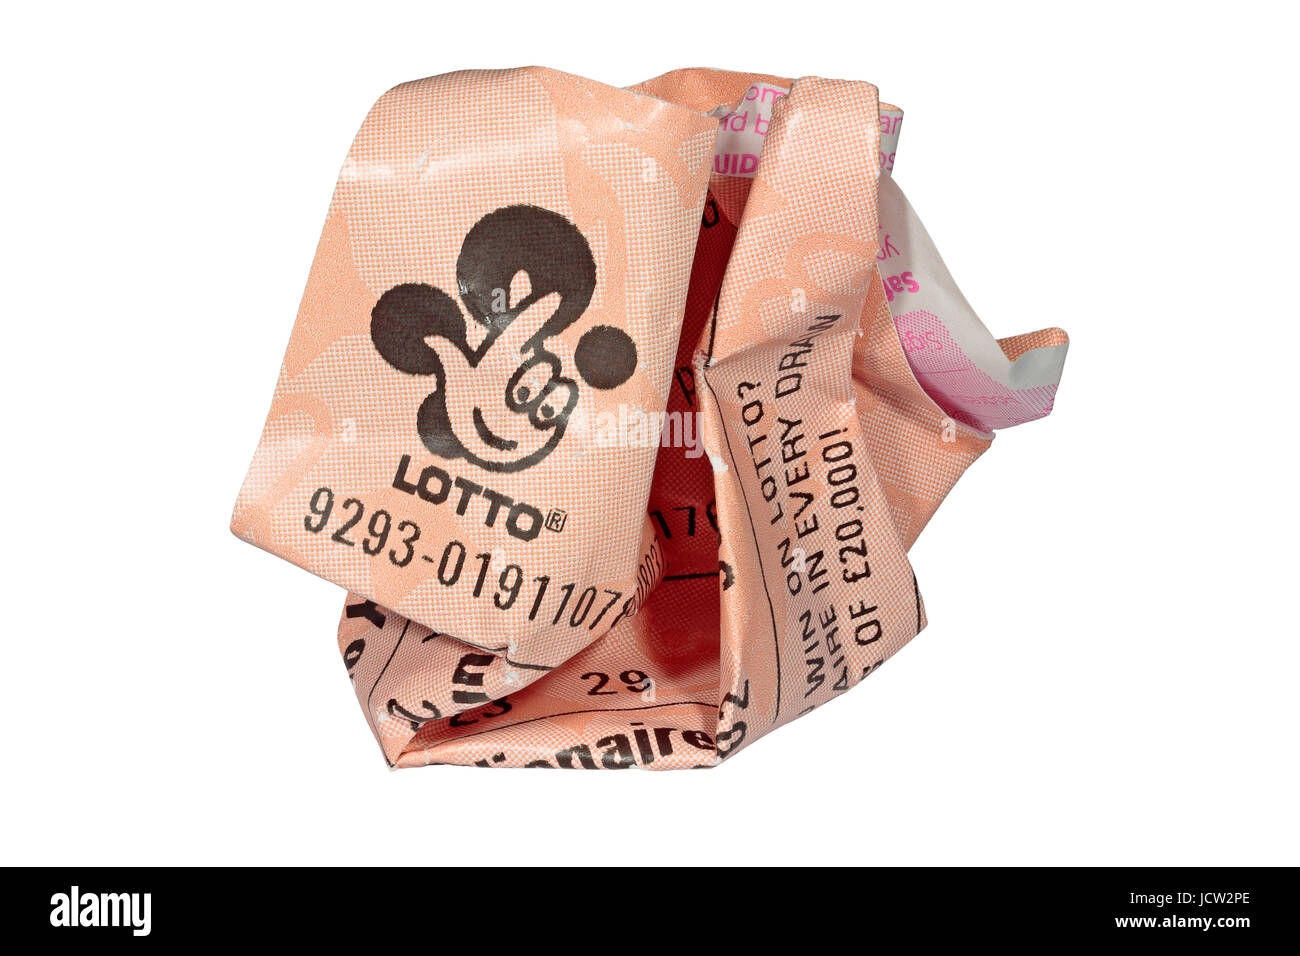 A crumpled lottery ticket - a screwed up £2 losing National Lottery / Lotto ticket - isolated on a white background - Stock Image